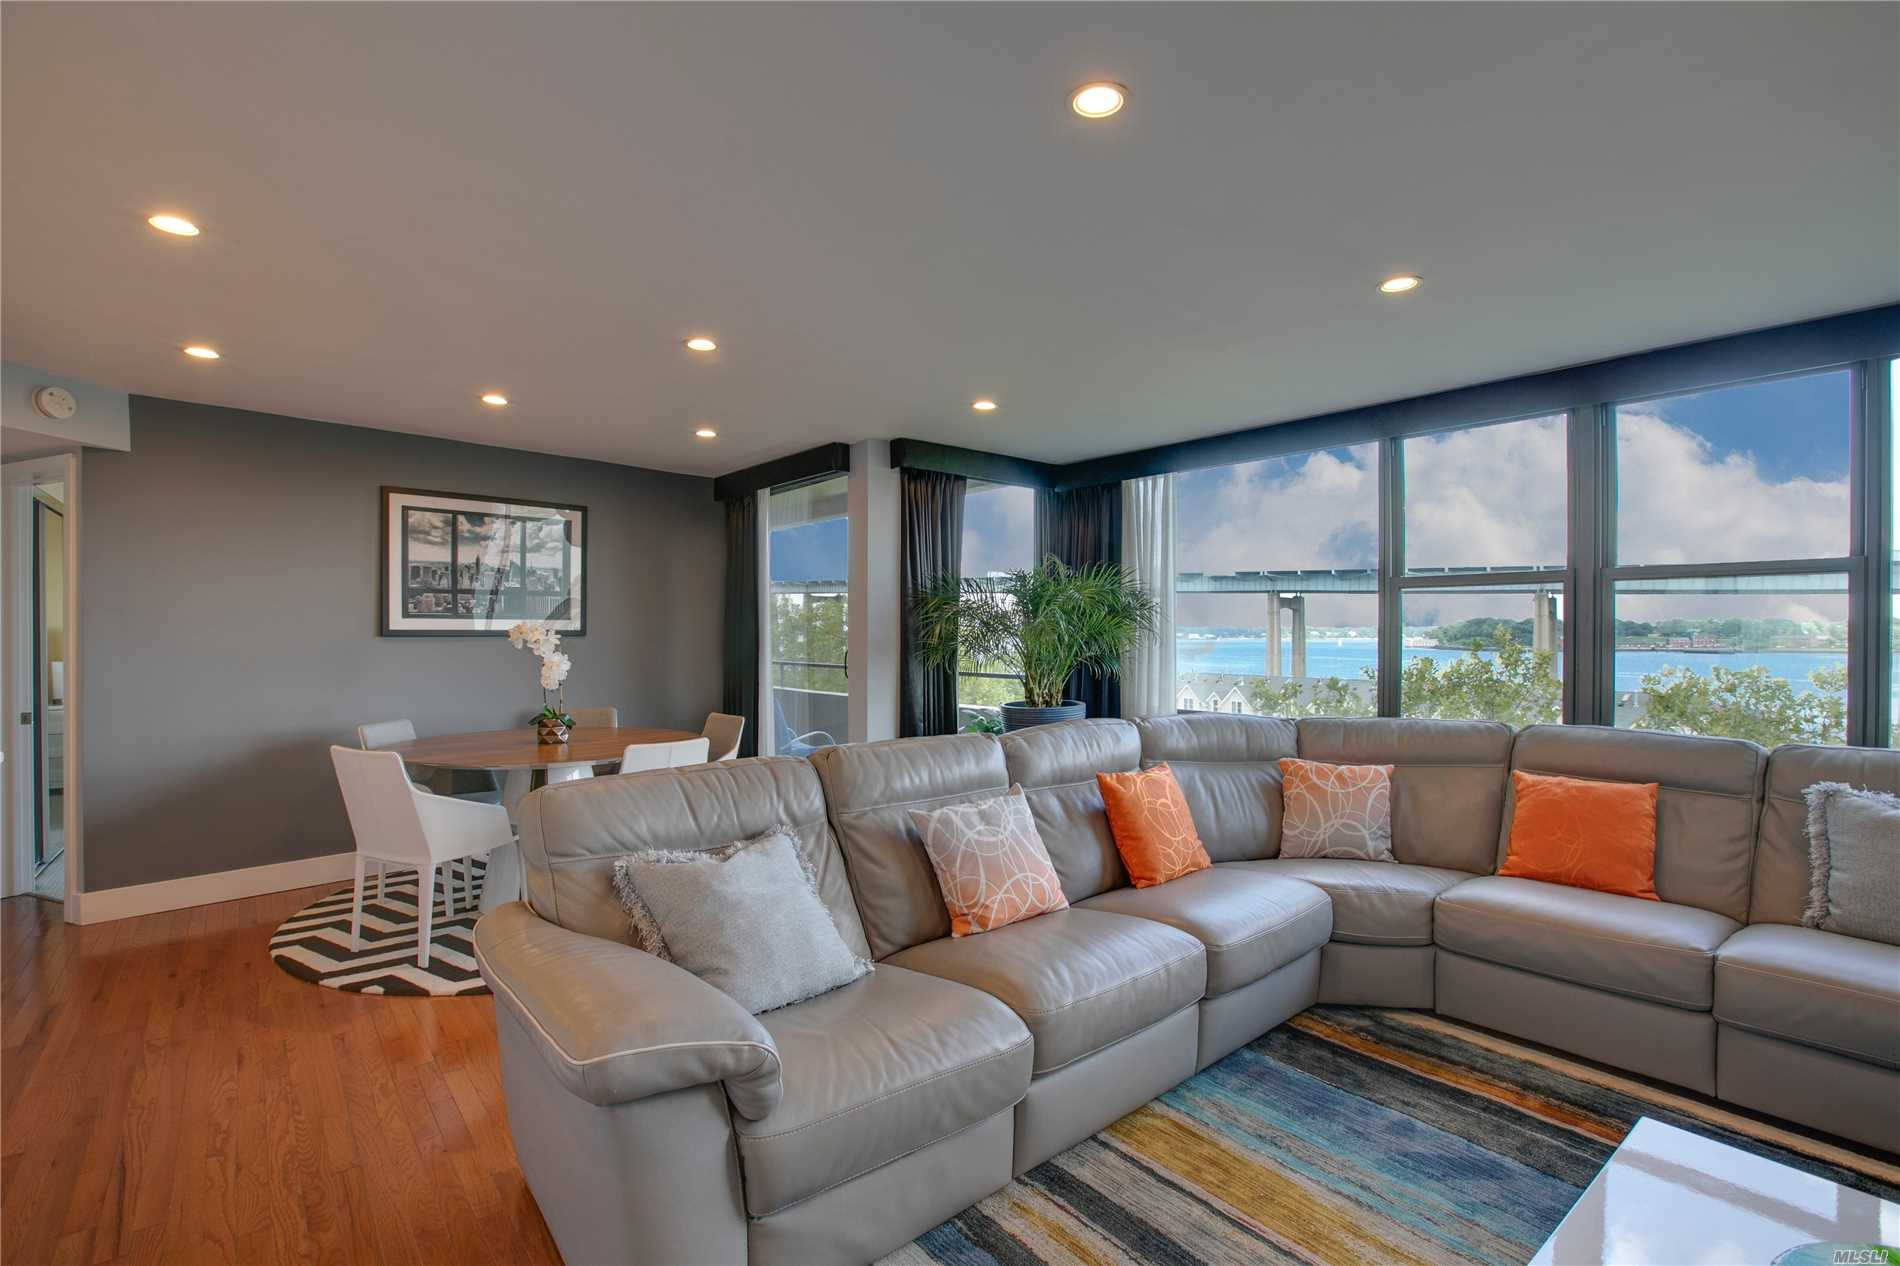 Beechhurst Le Havre Spectacular 3 Br Apartment With Panoramic Water Views. Designer Renovation With Unsurpassed Detail To Luxury. This One Of A Kind Unit Feat. Expanded Euro Kitchen With State Of The Art Appliances, Stainless Steel Backsplash, Spa Bath, Hardwood Floors, Central Air And Custom Built-Ins. Enjoy The Prime Waterfront Location & Morning Sunrise On Your Very Own Private Balcony.Le Havre Development Offers 2 Outdoor Pools, Tennis, Gym, & Cafe. Express Bus To Nyc & Local Bus To Flushing